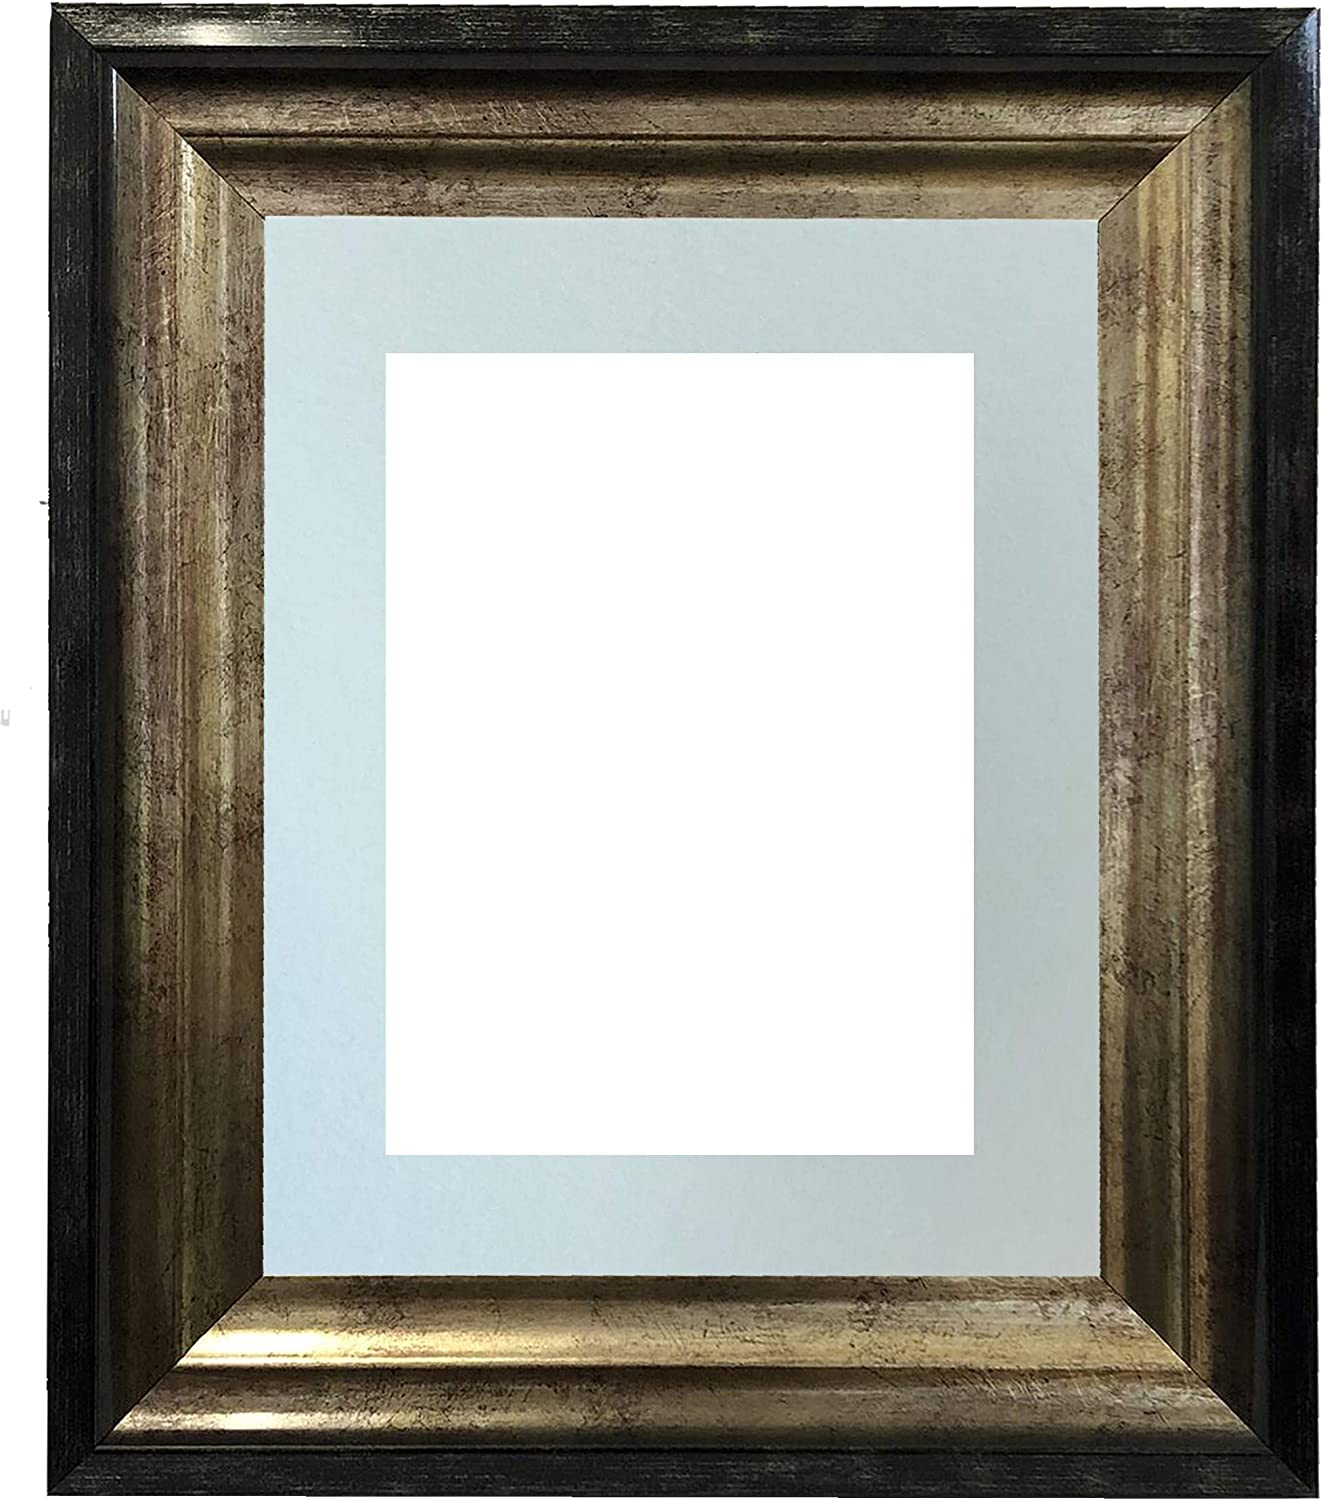 FRAMES BY POST Firenza Max 52% OFF Antique Picture Black Max 80% OFF Distressed and Gold